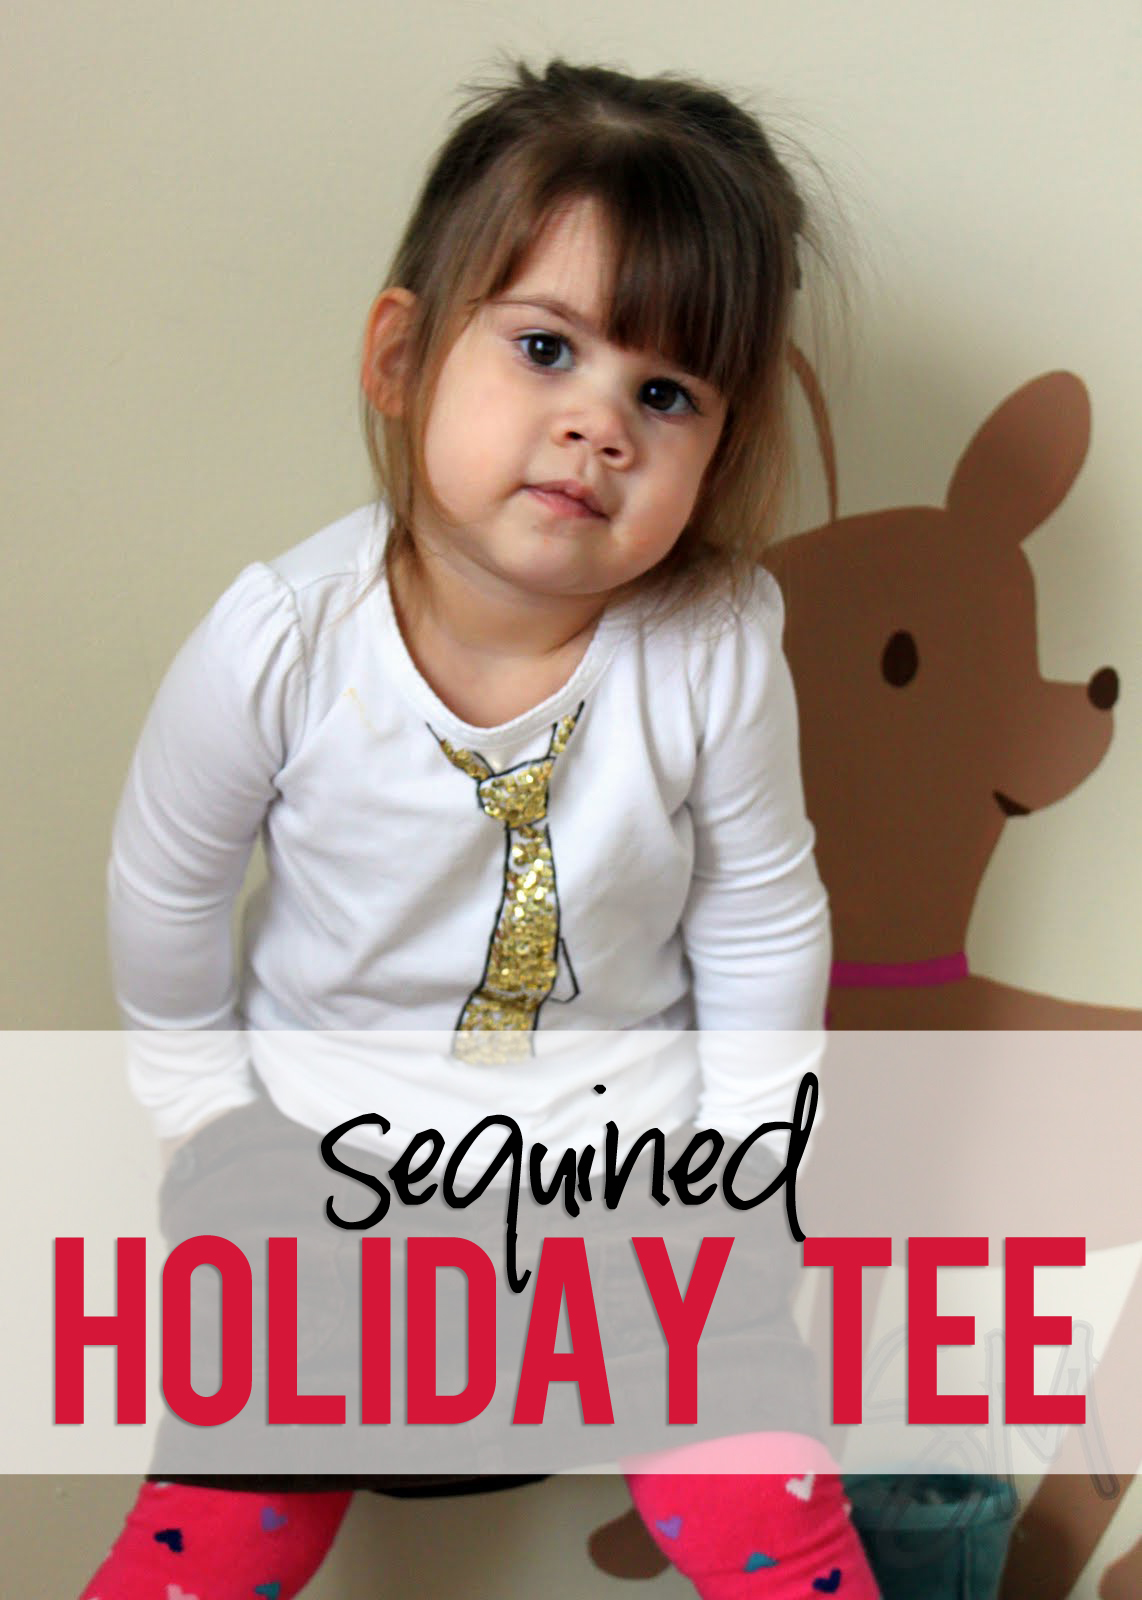 Sequined Holiday Tee